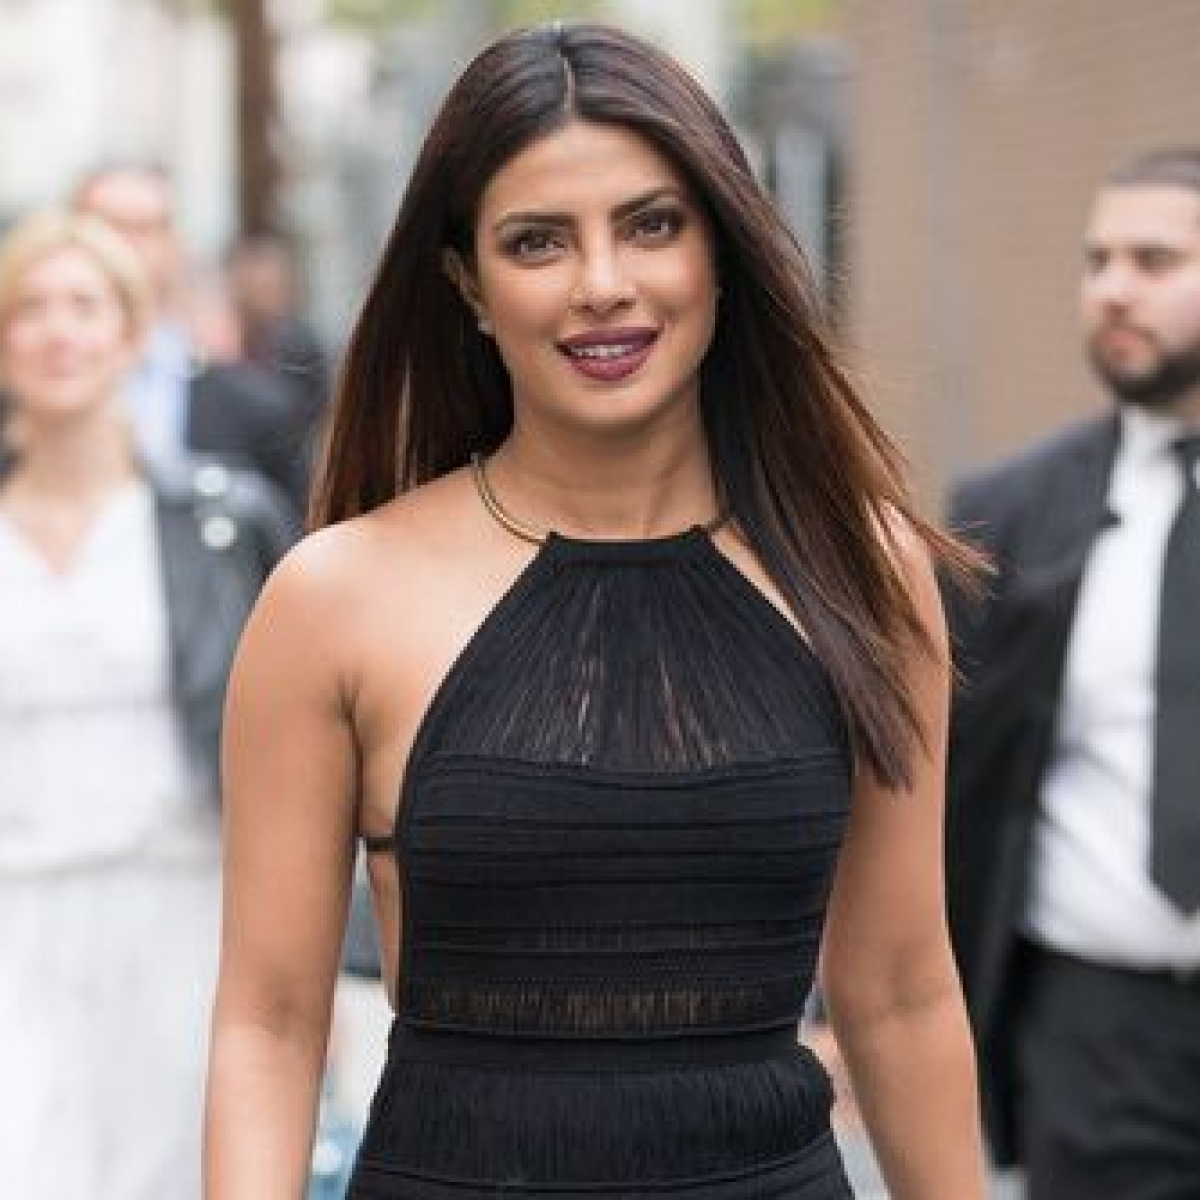 Priyanka Chopra Jonas to present at 2021 BAFTA awards